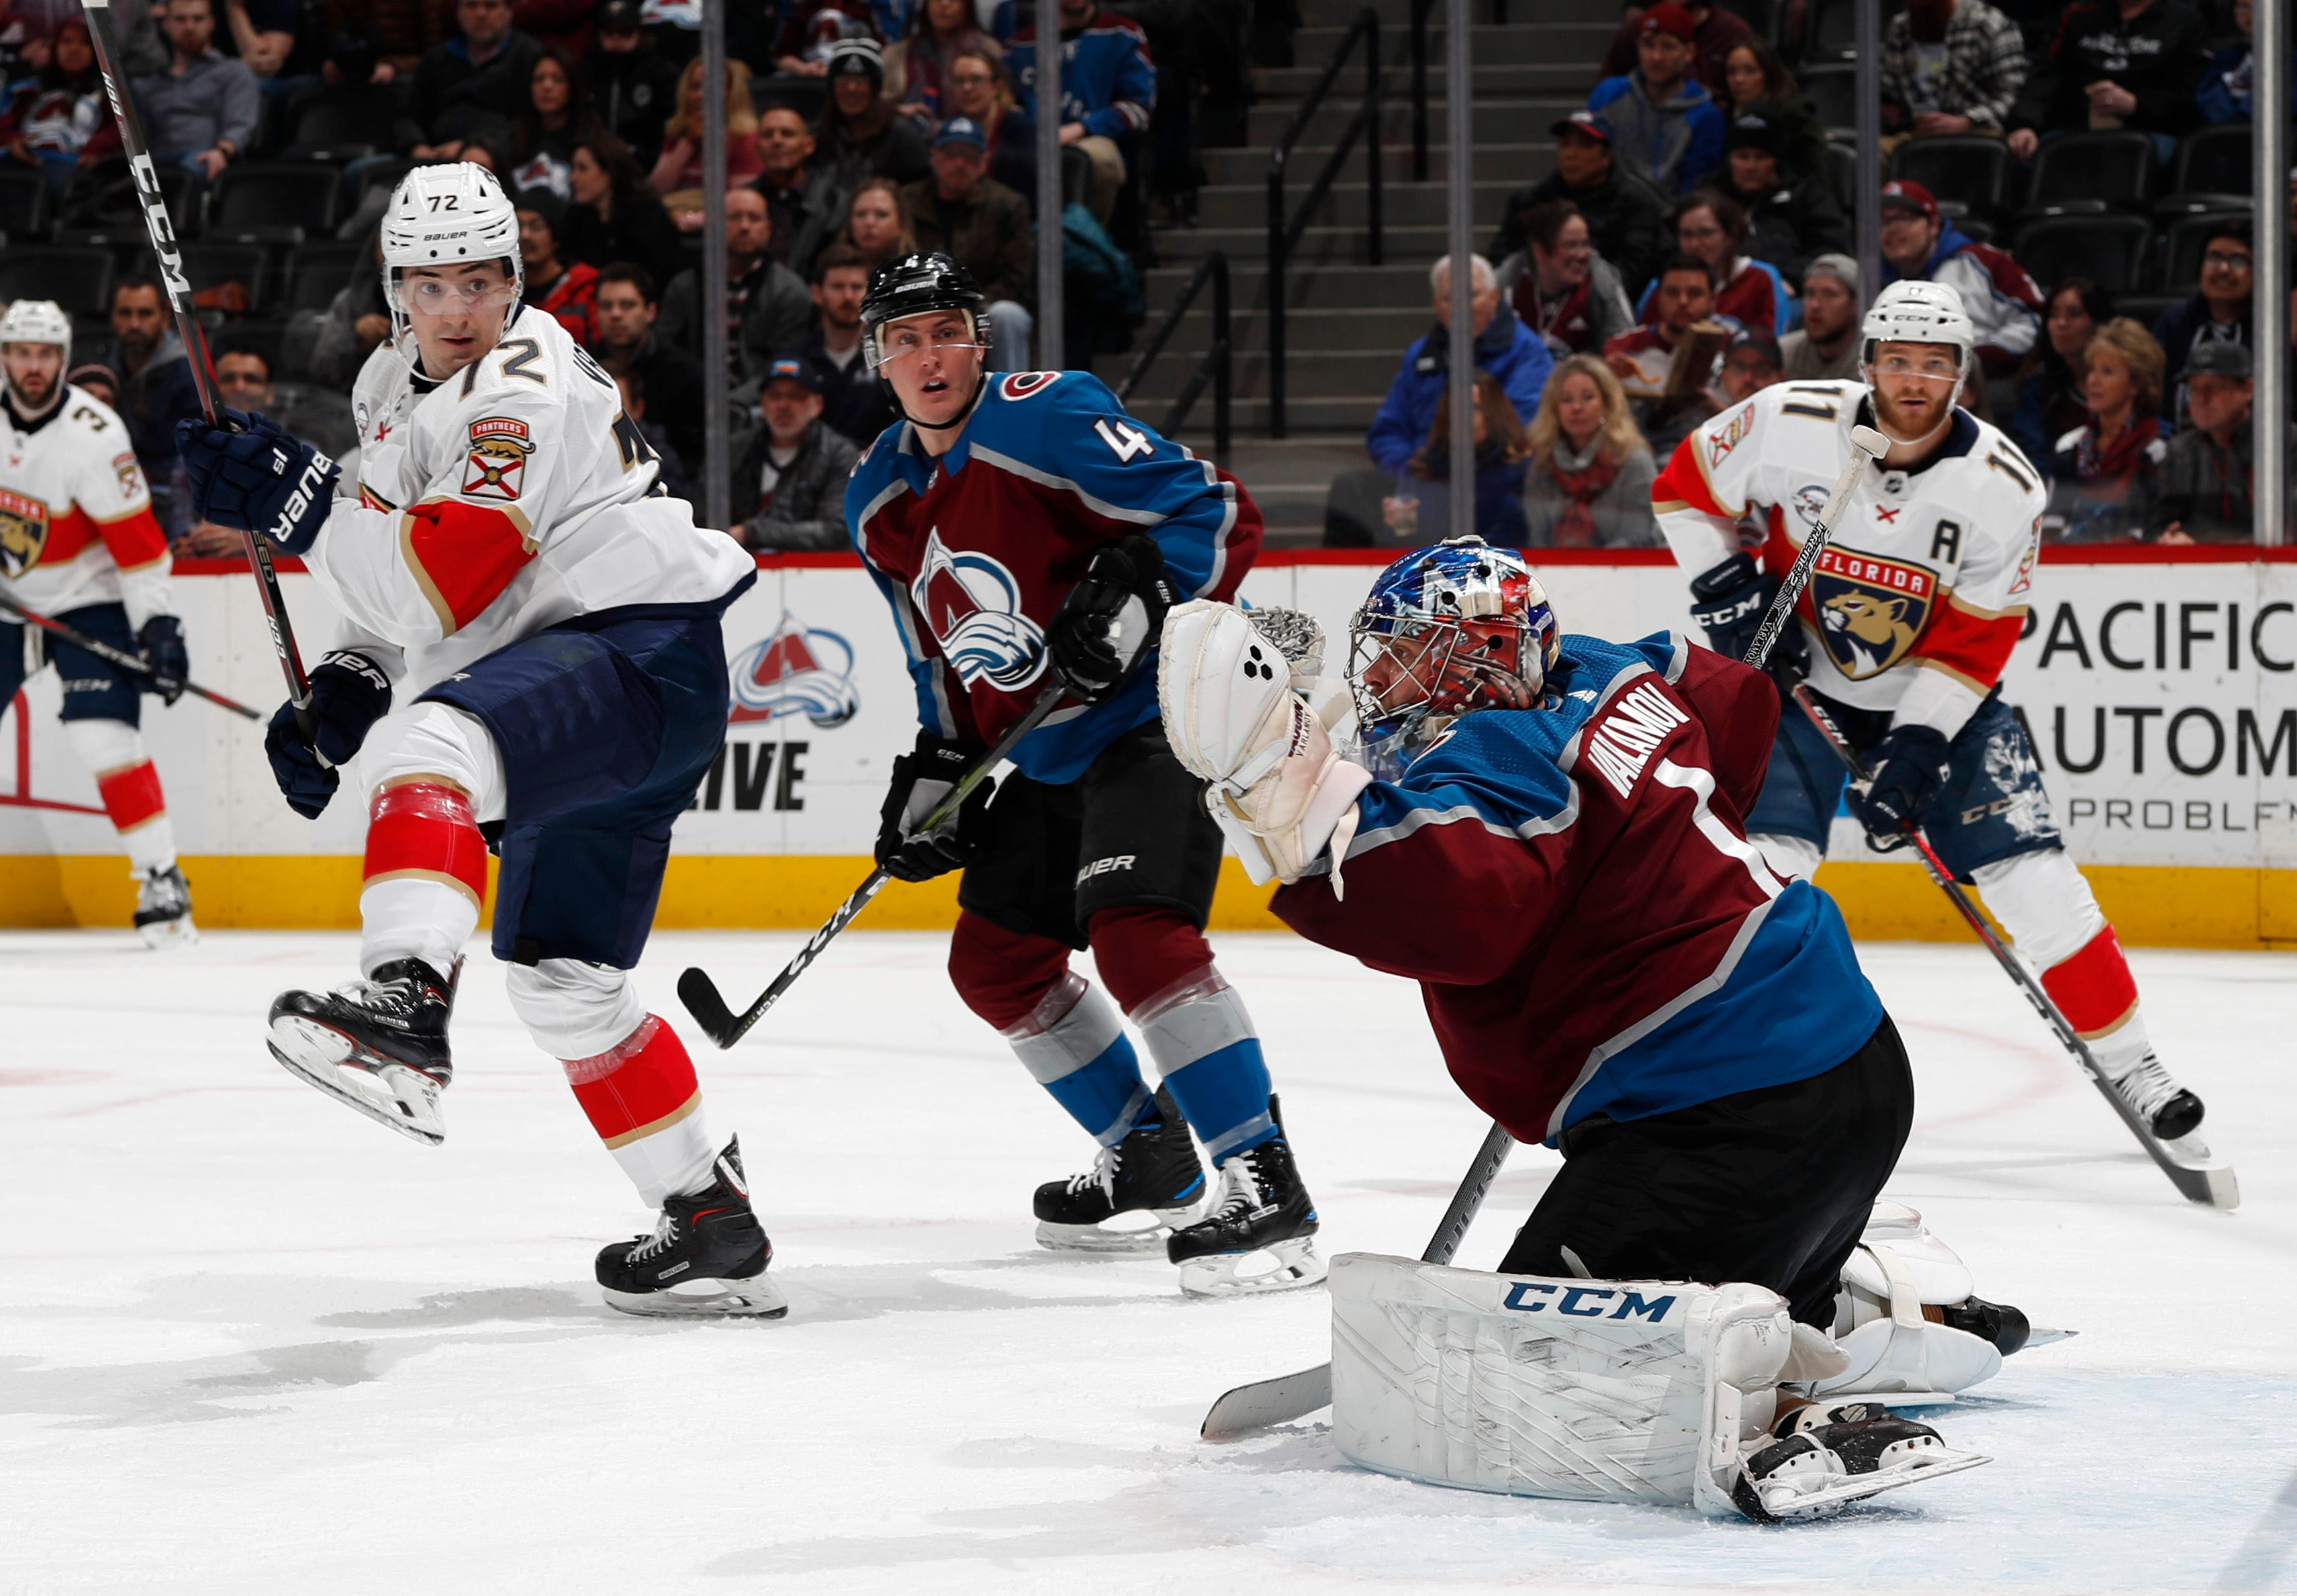 Ekblad's quick OT goal gives Panthers 4-3 win over Avalanche